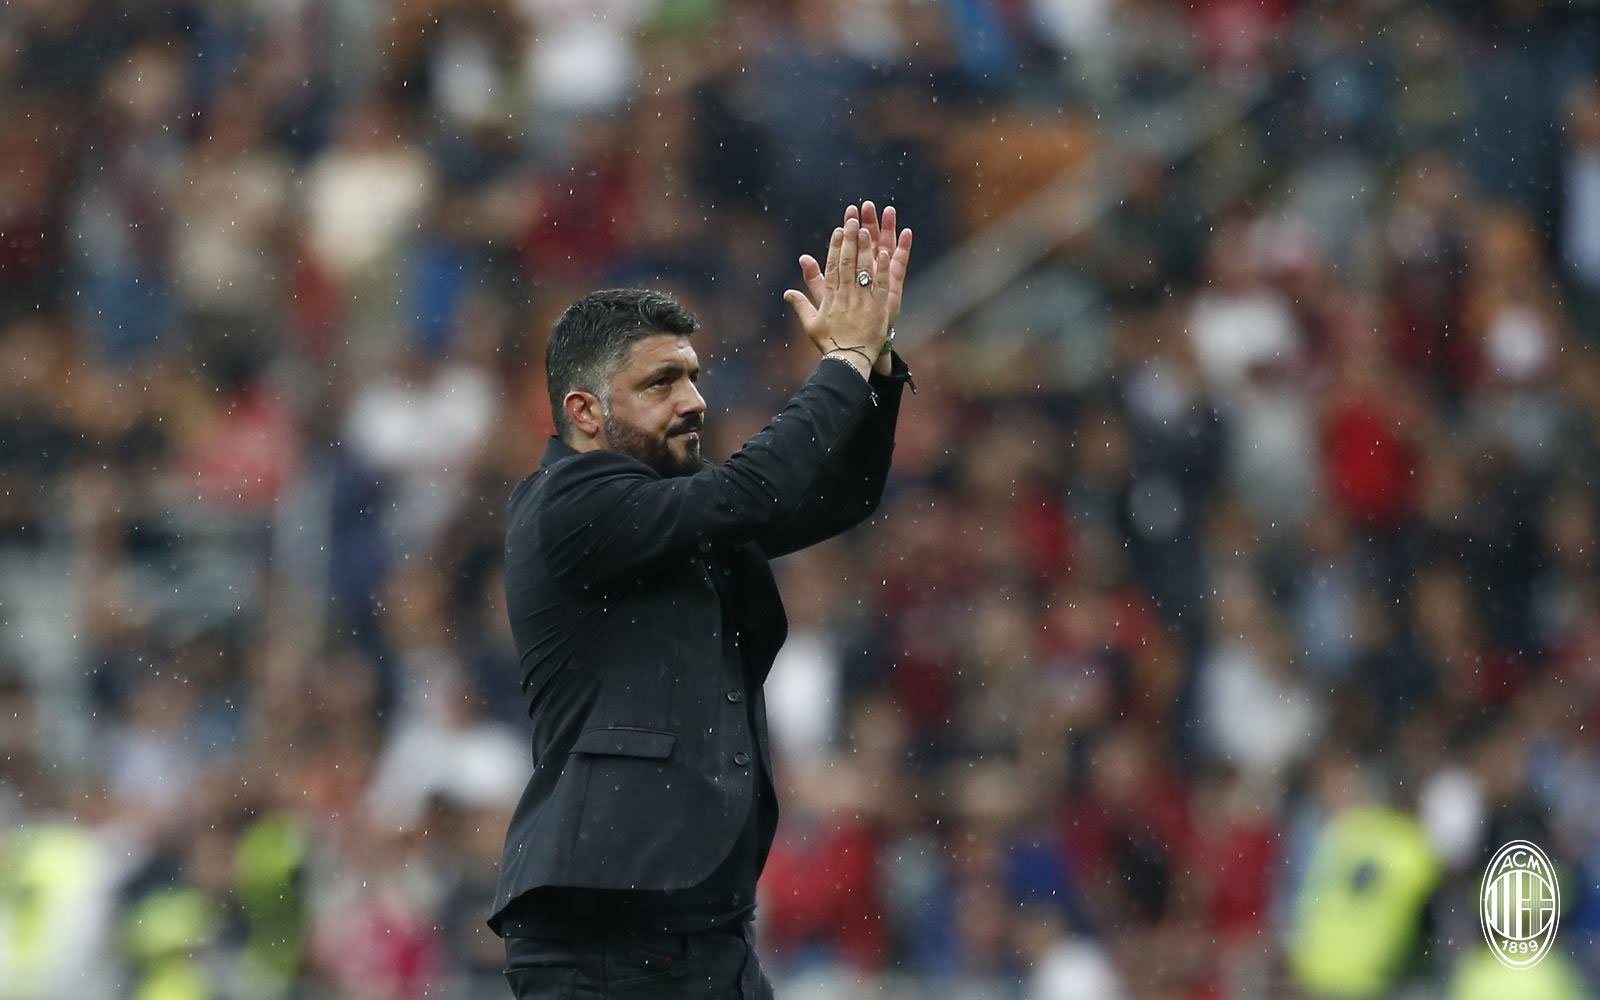 Gennaro Gattuso thanking the fans at the end of Milan-Fiorentina at Stadio San Siro on May 20, 2018. (@acmilan.com)